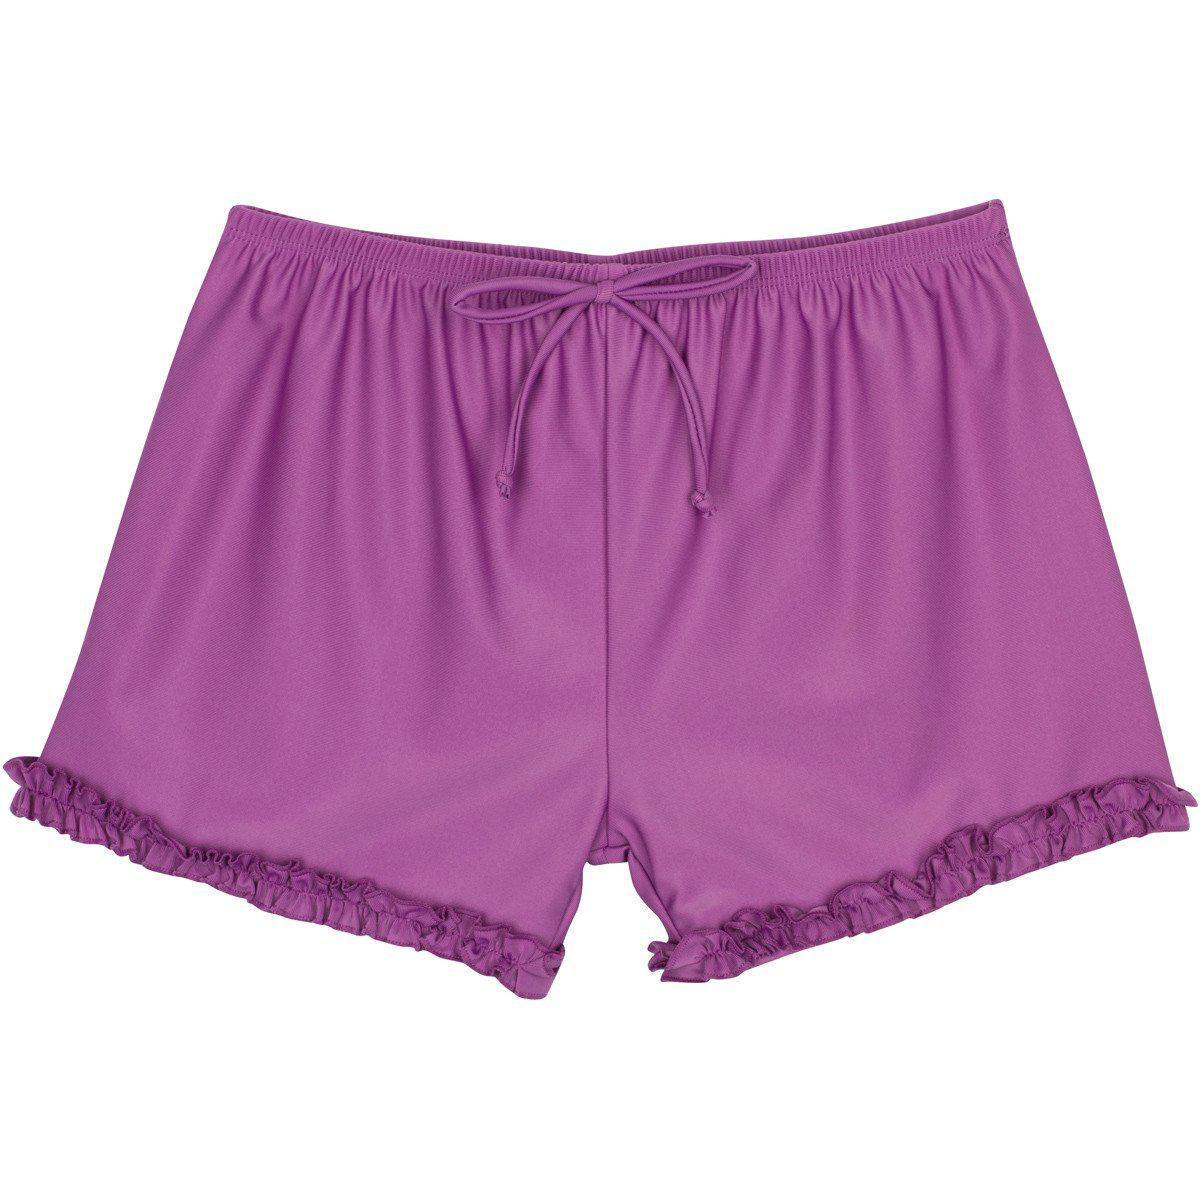 modest girl swim shorts purple uv sun protection swimzip